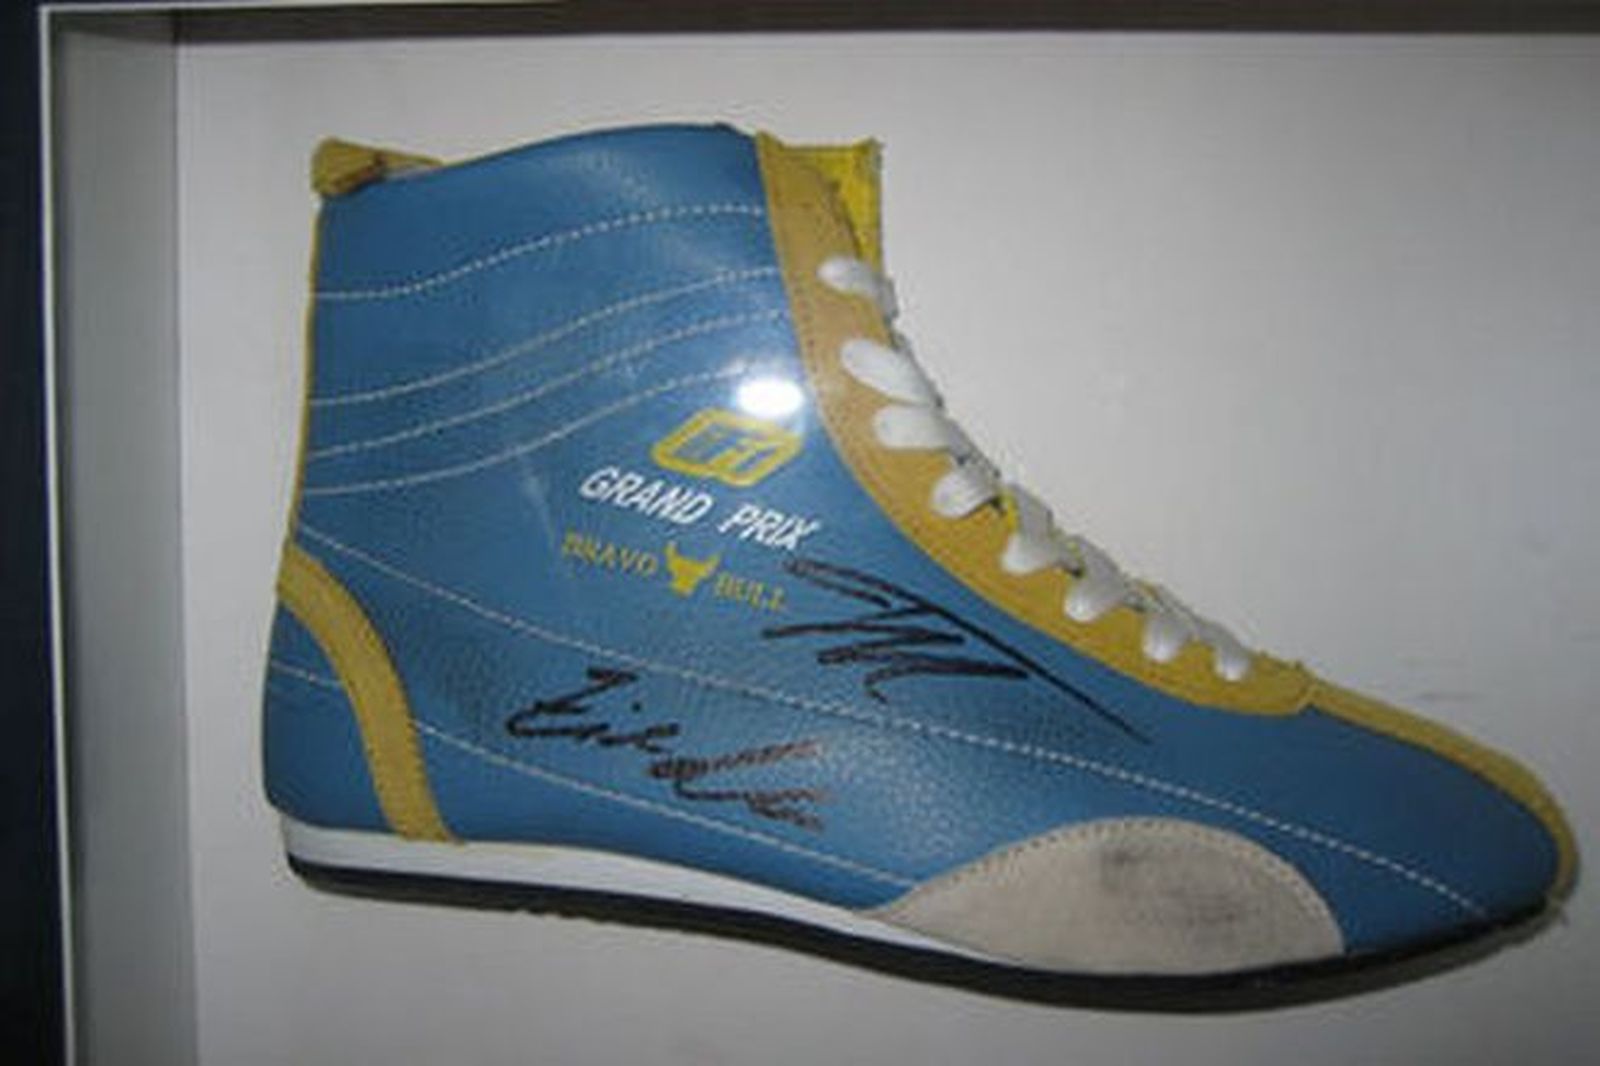 34946afe5047e Framed Renault F1 Display - Signed F1 Racing Boot by Fernando Alonso    Giancarlo Fisichella